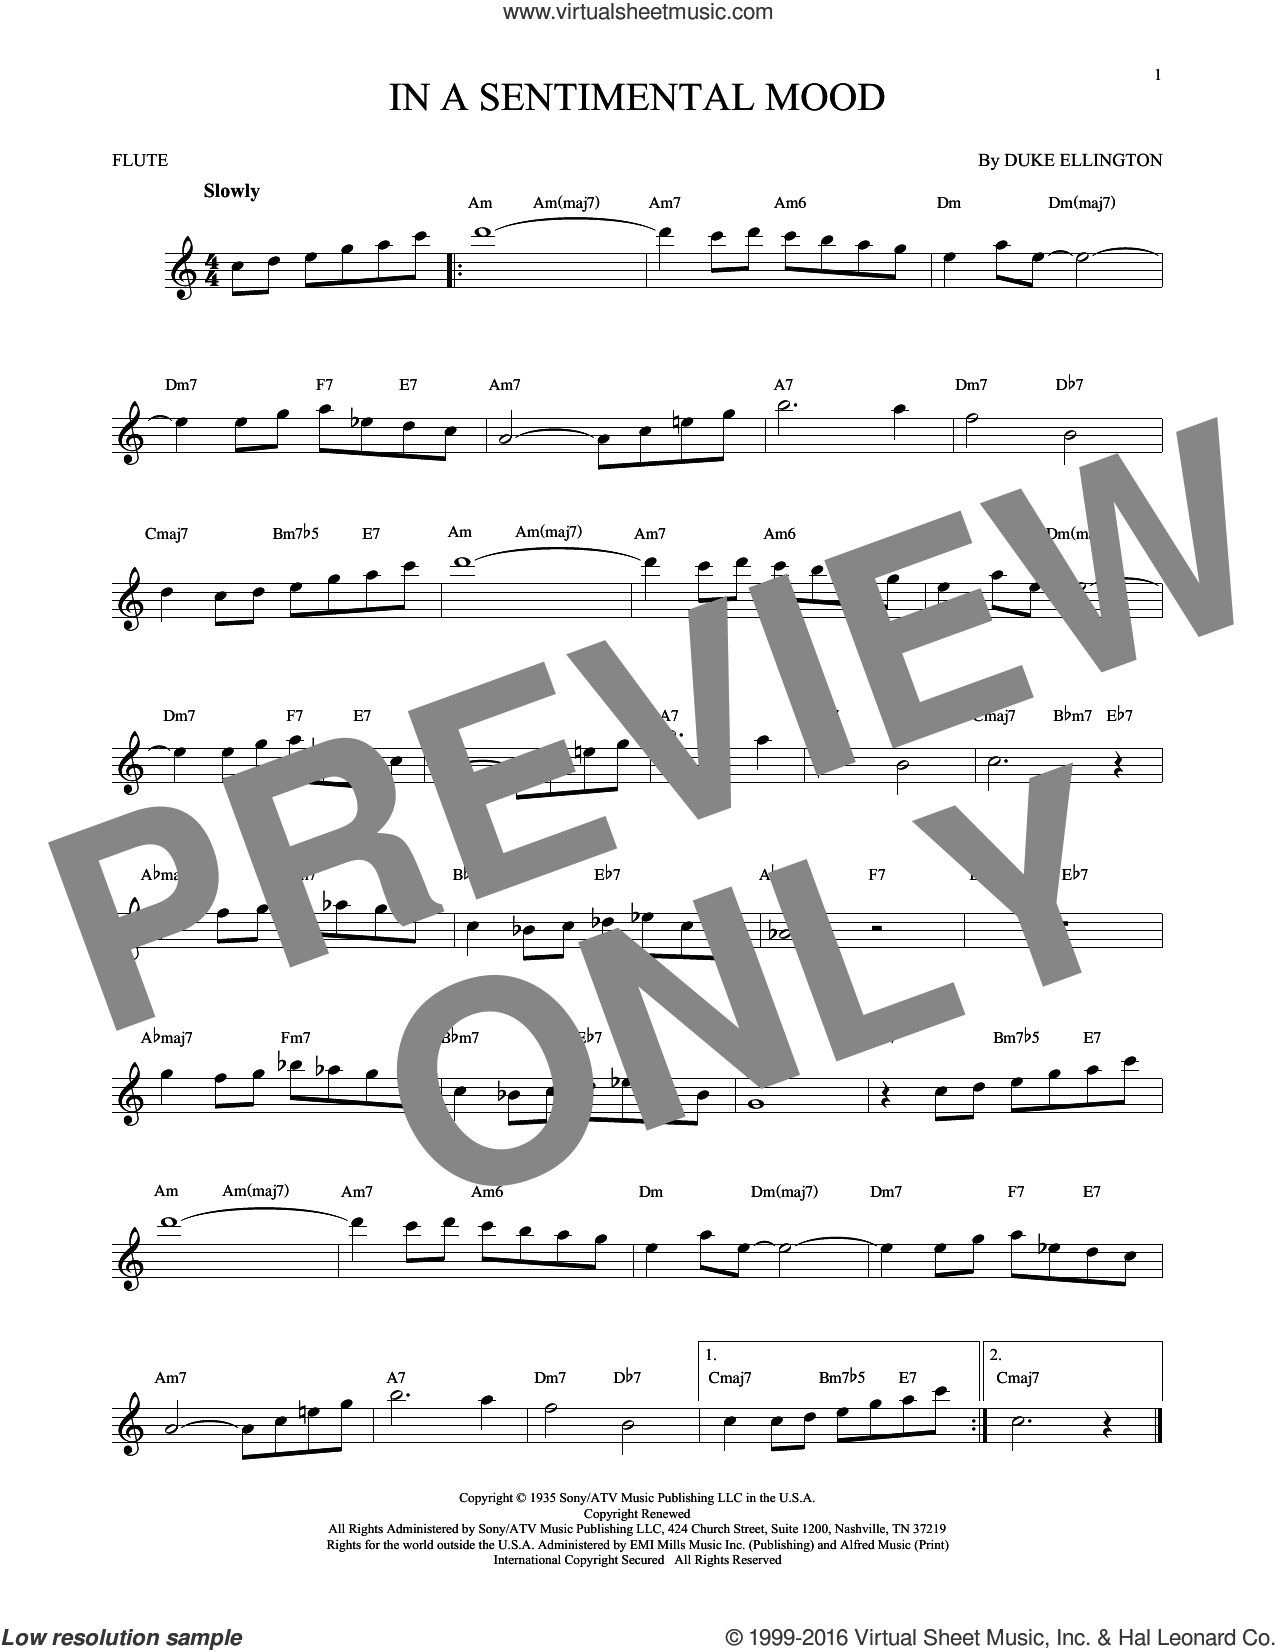 In A Sentimental Mood sheet music for flute solo by Manny Kurtz, Duke Ellington and Irving Mills. Score Image Preview.